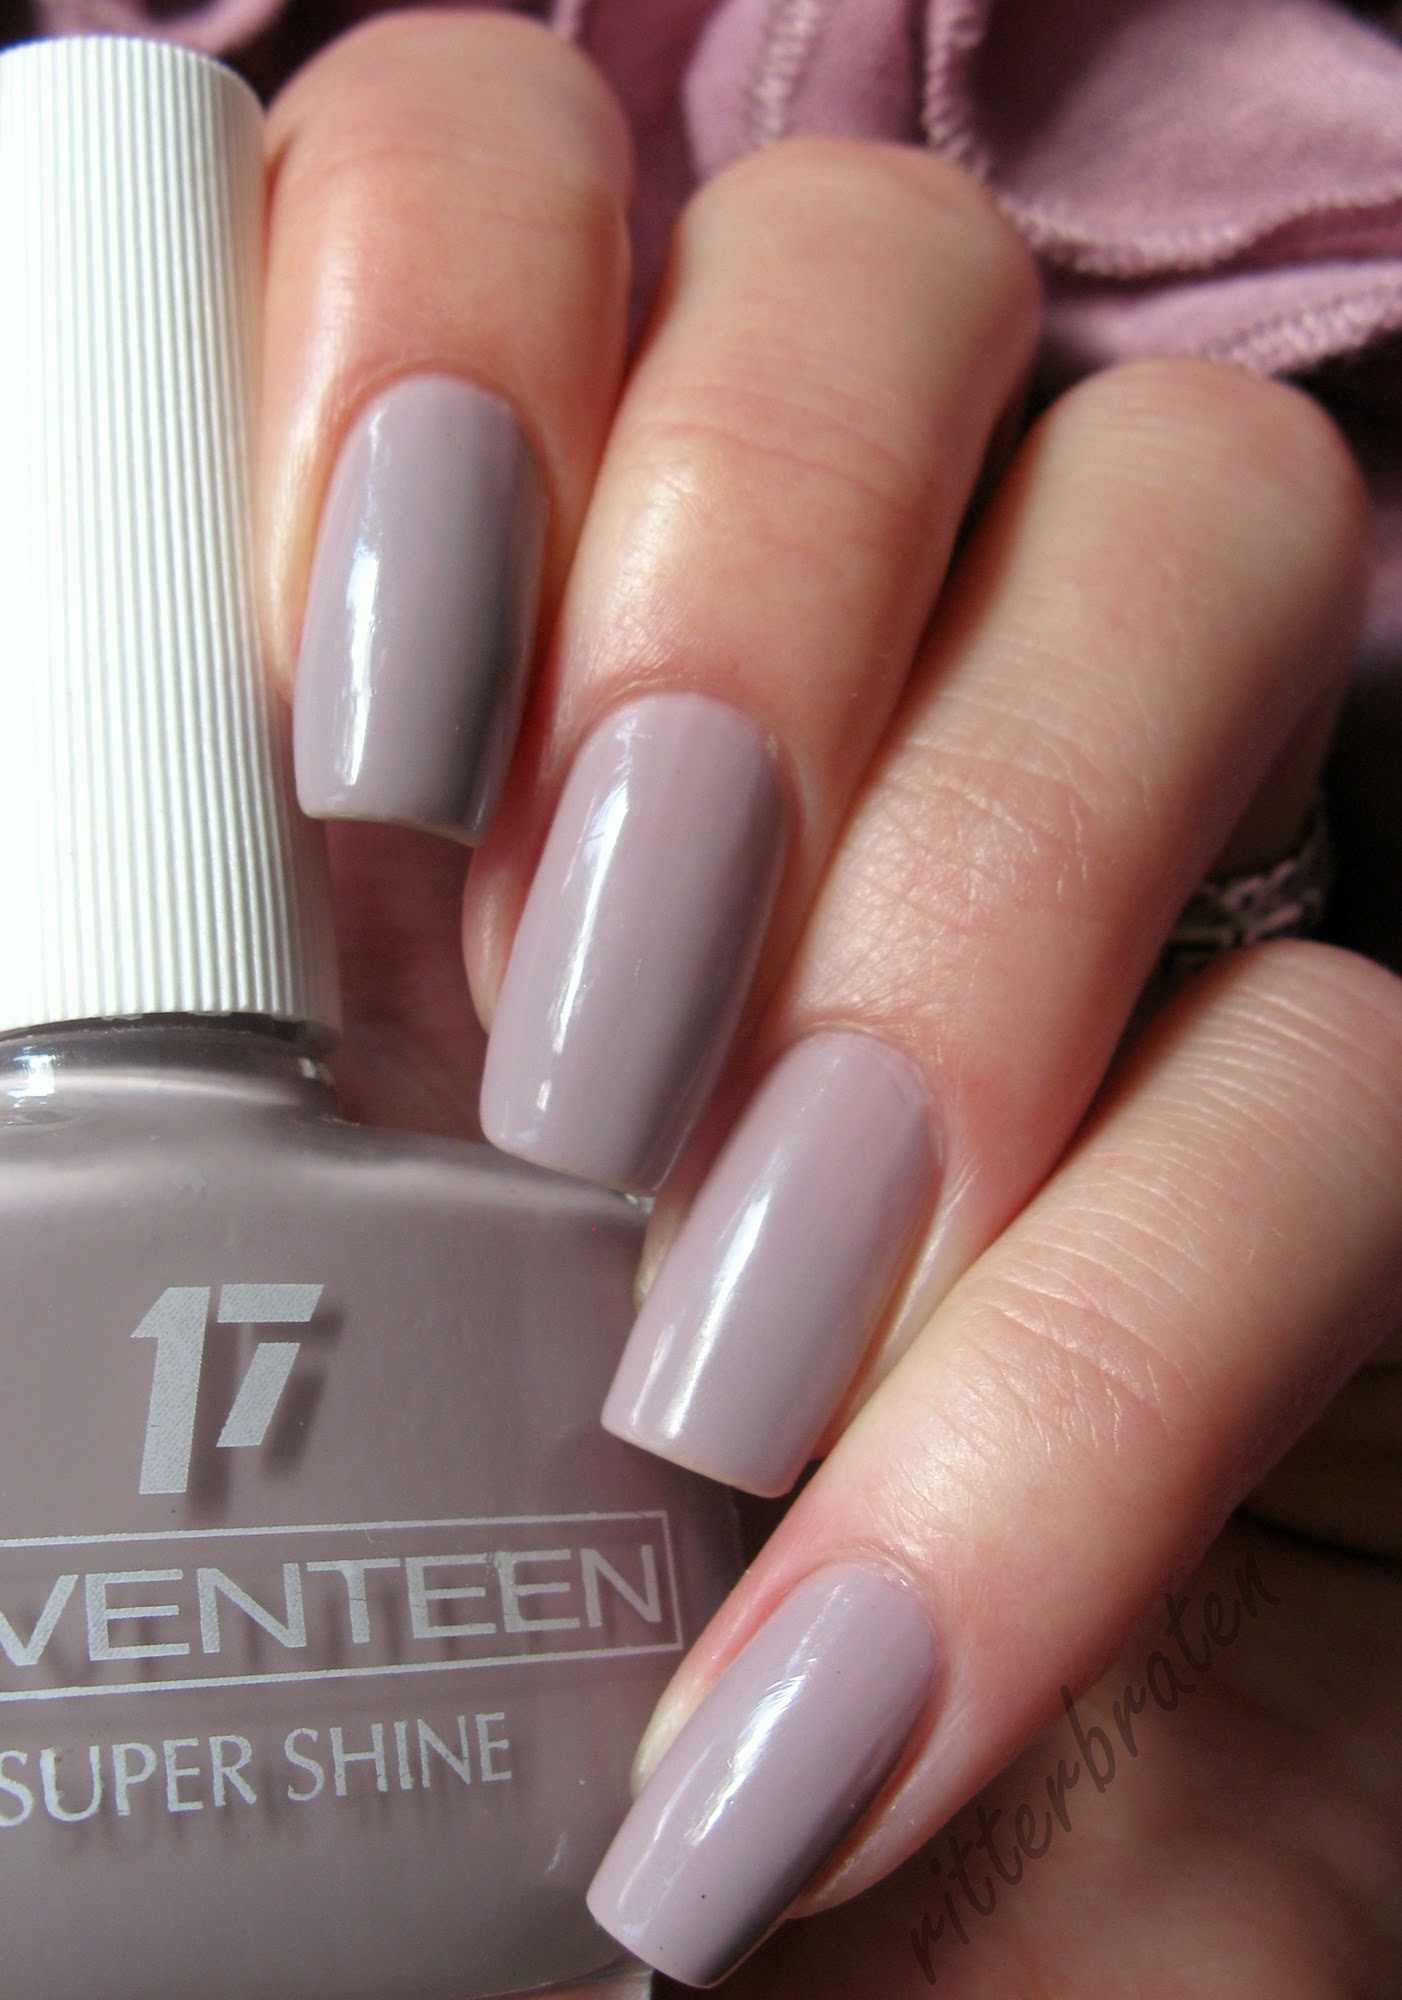 Seventeen 271 swatch nail polish